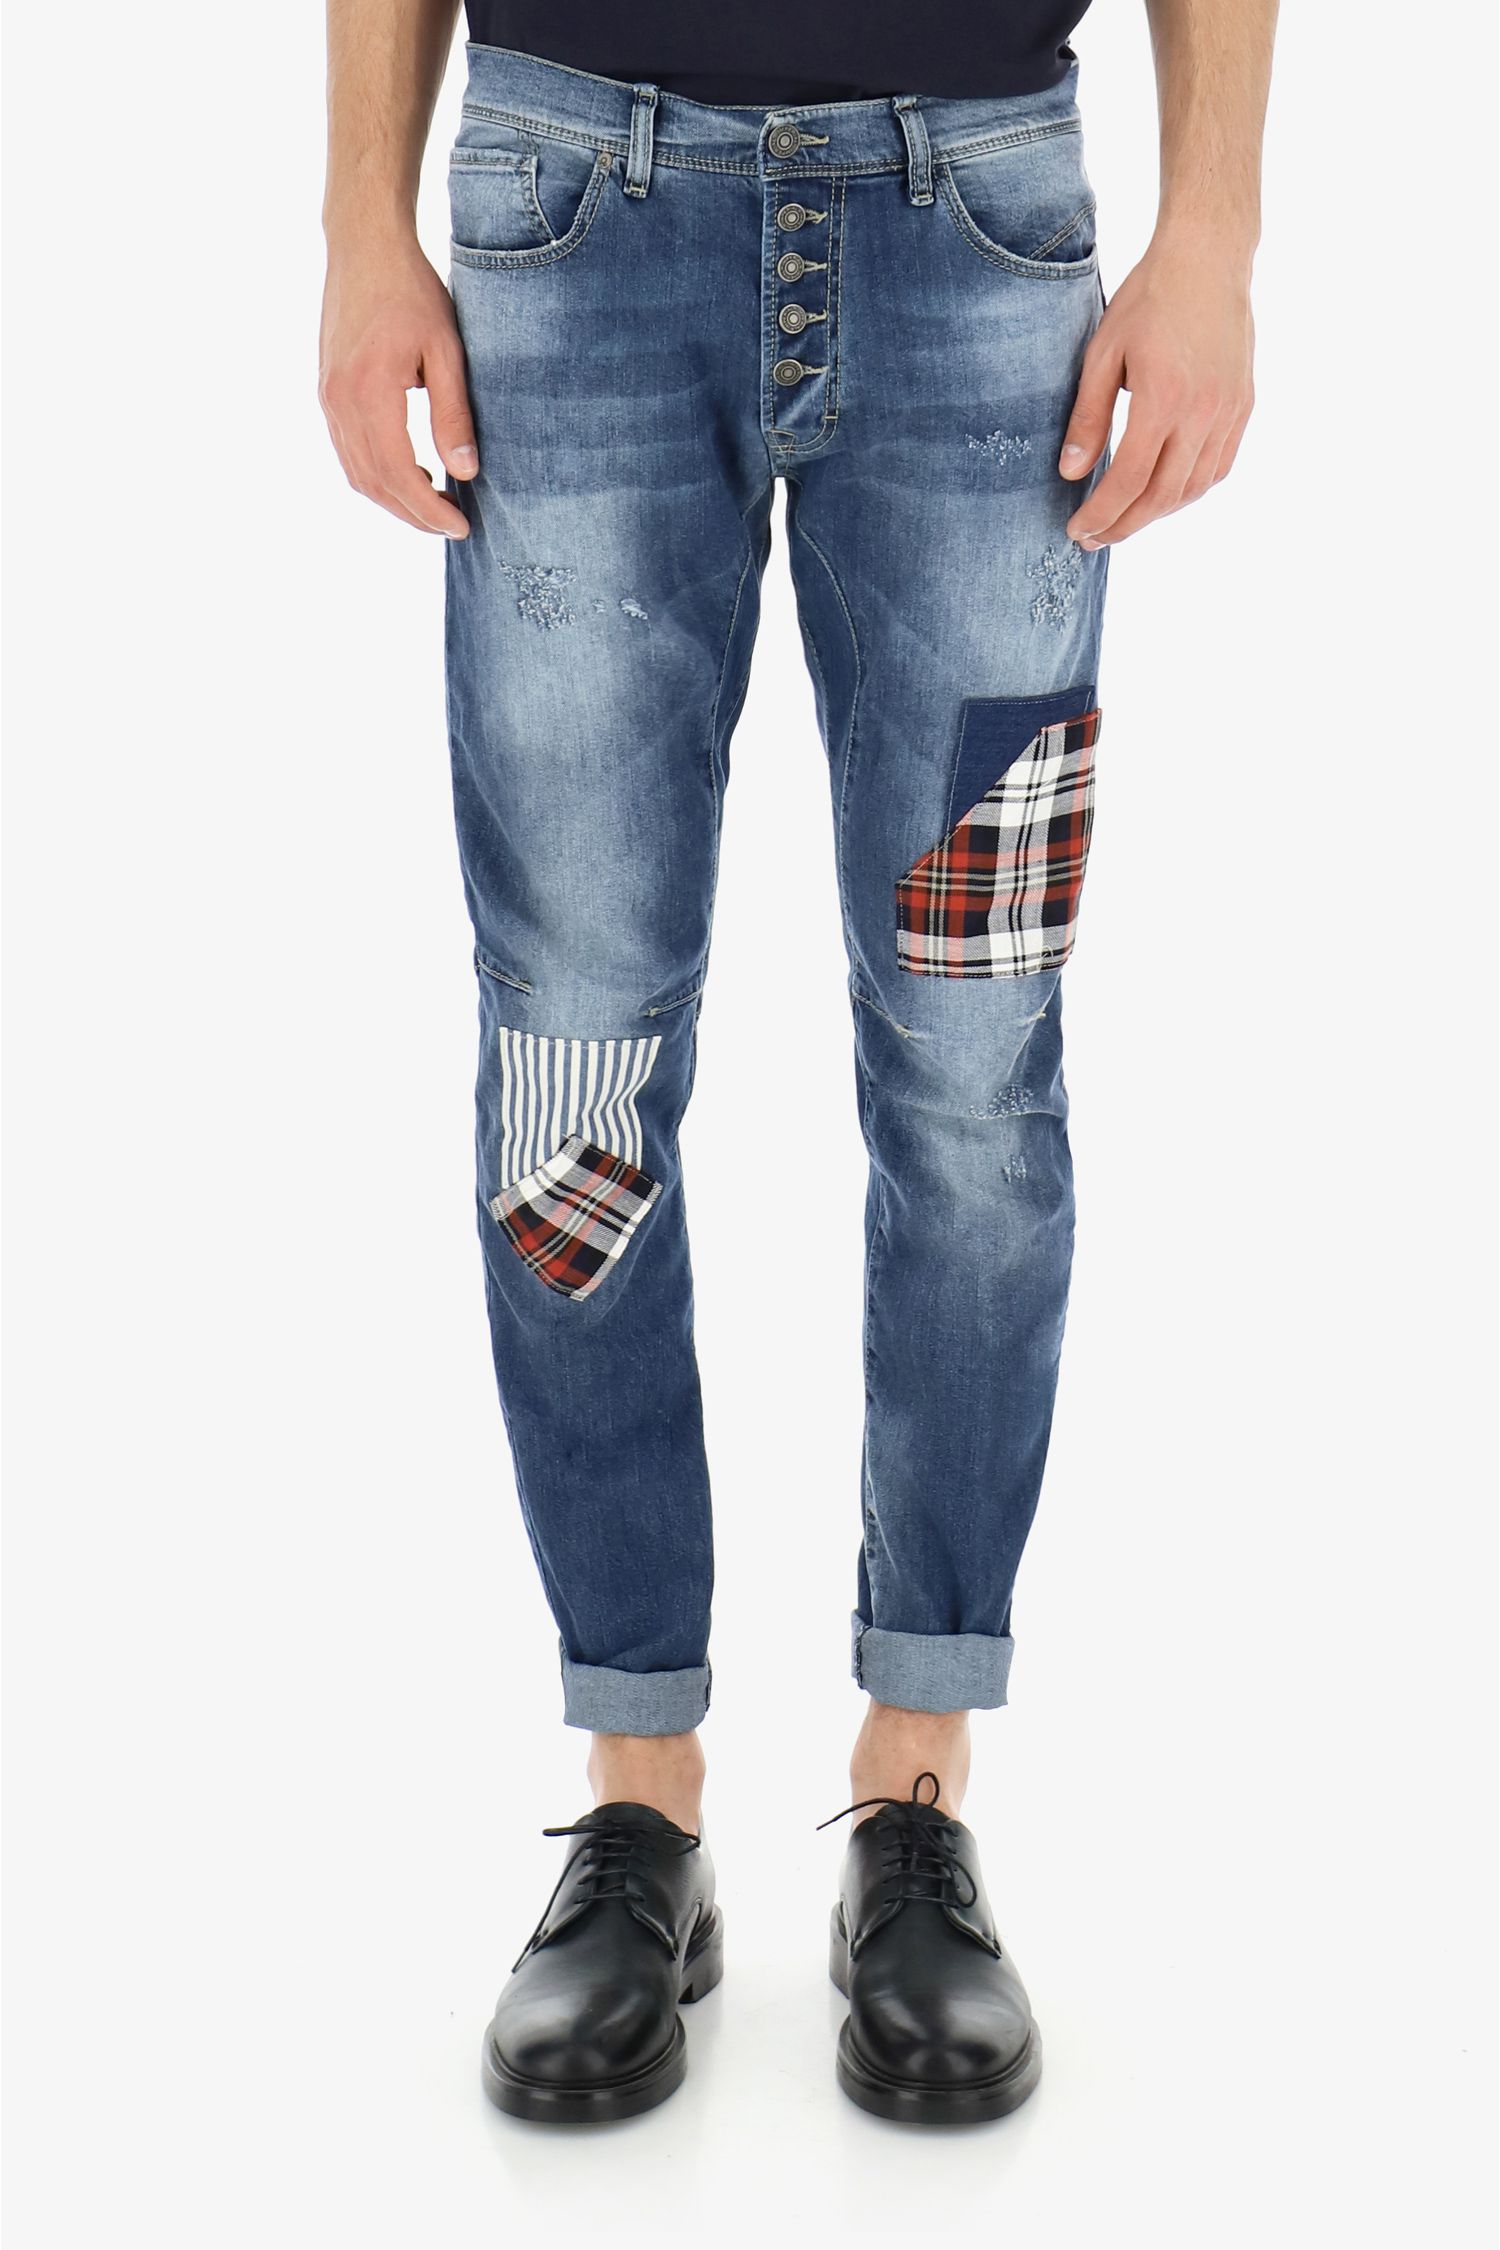 IMPERIAL Jeans Uomo